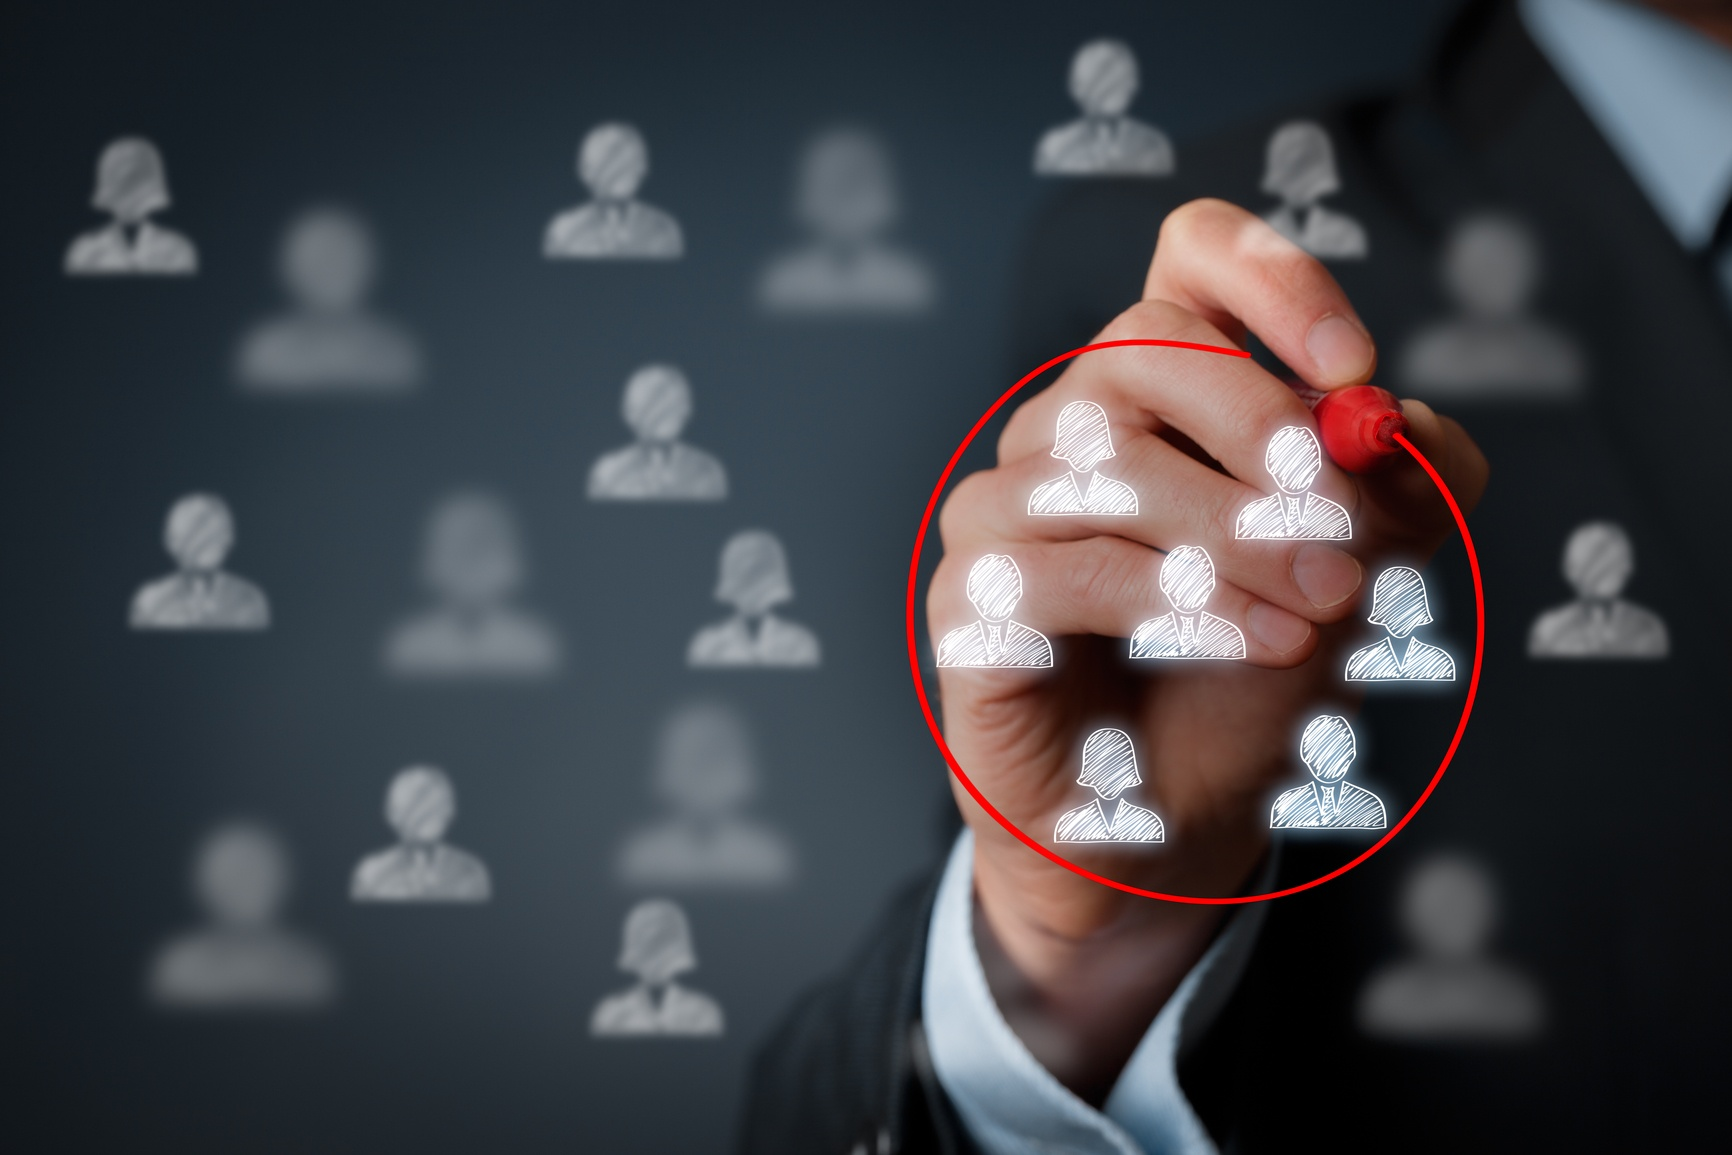 Customer Segmentation and Profiling